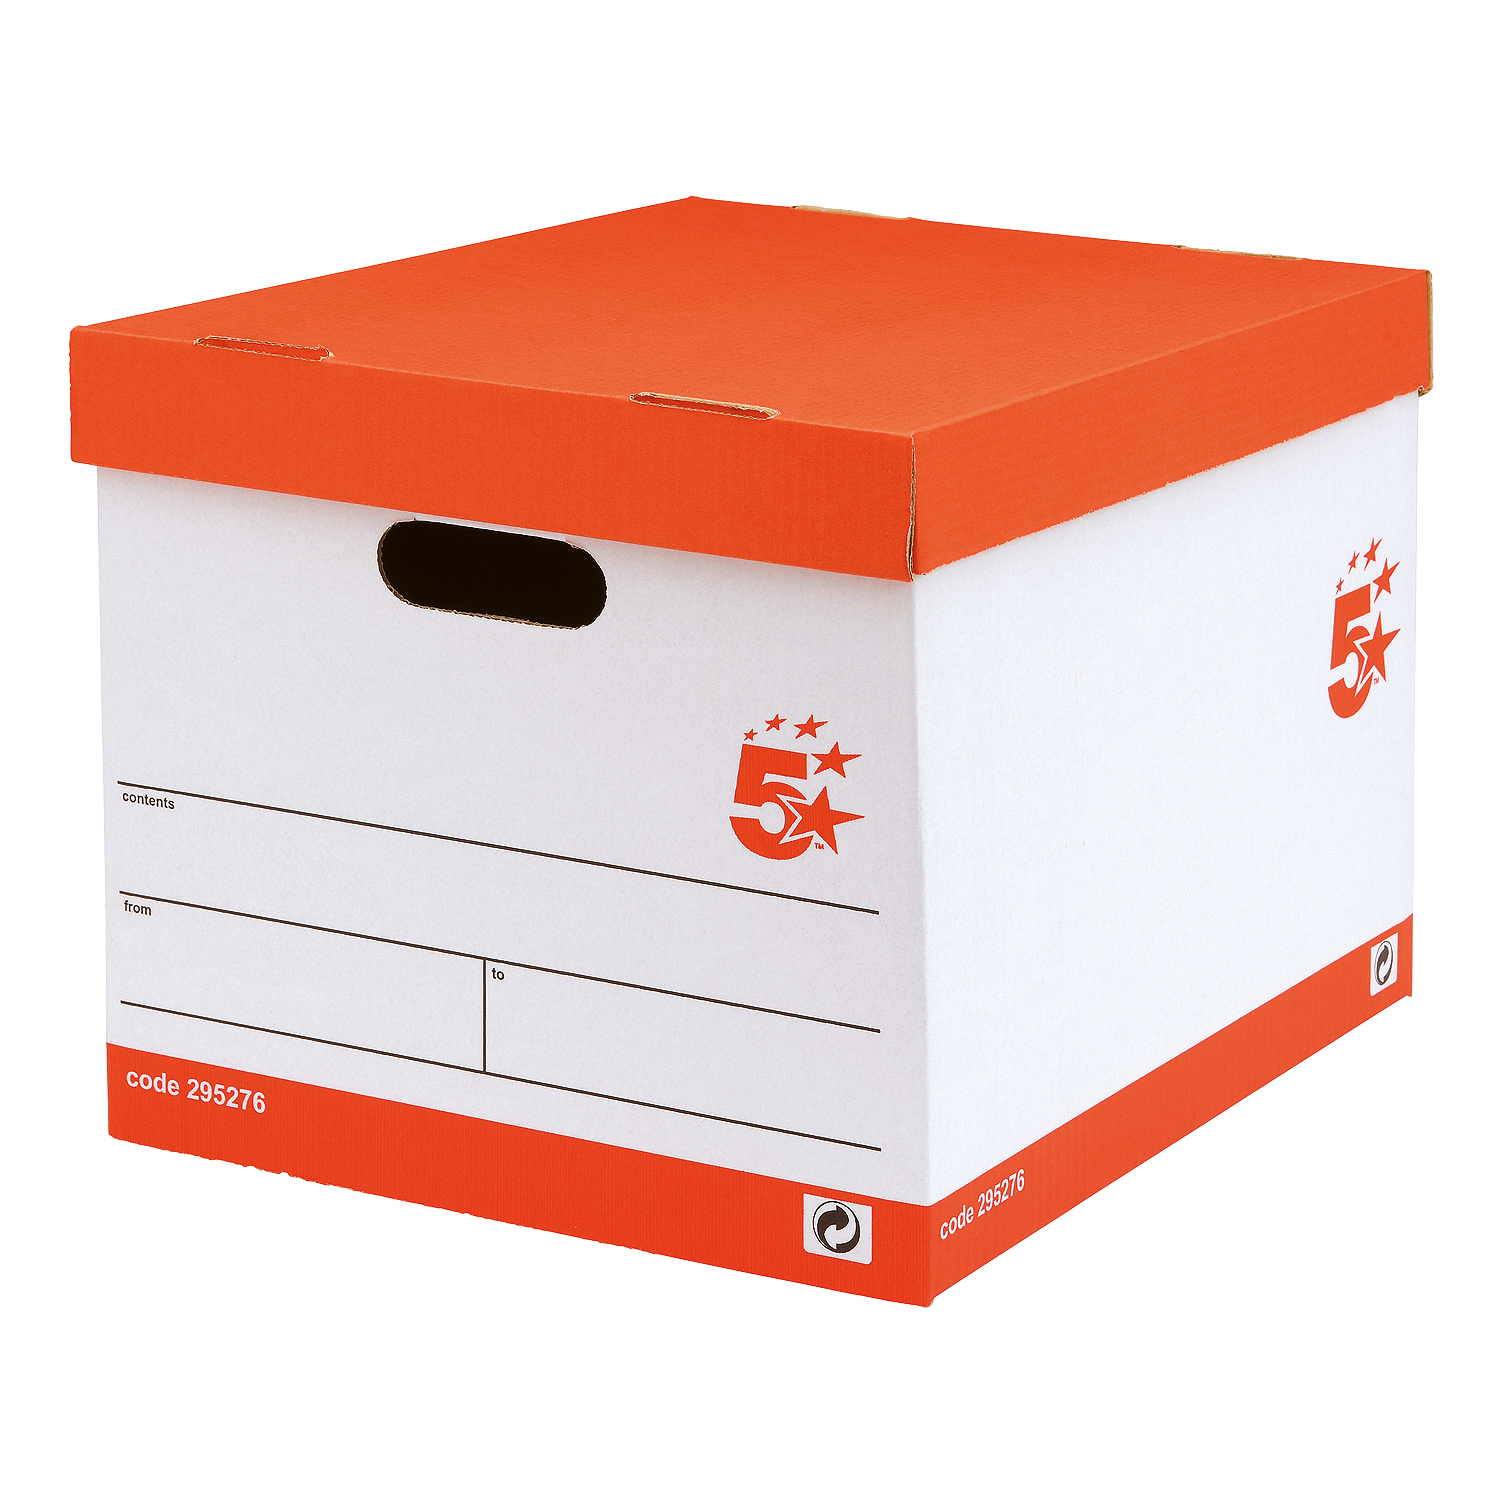 5 Star FSC Storage Box Oyster White